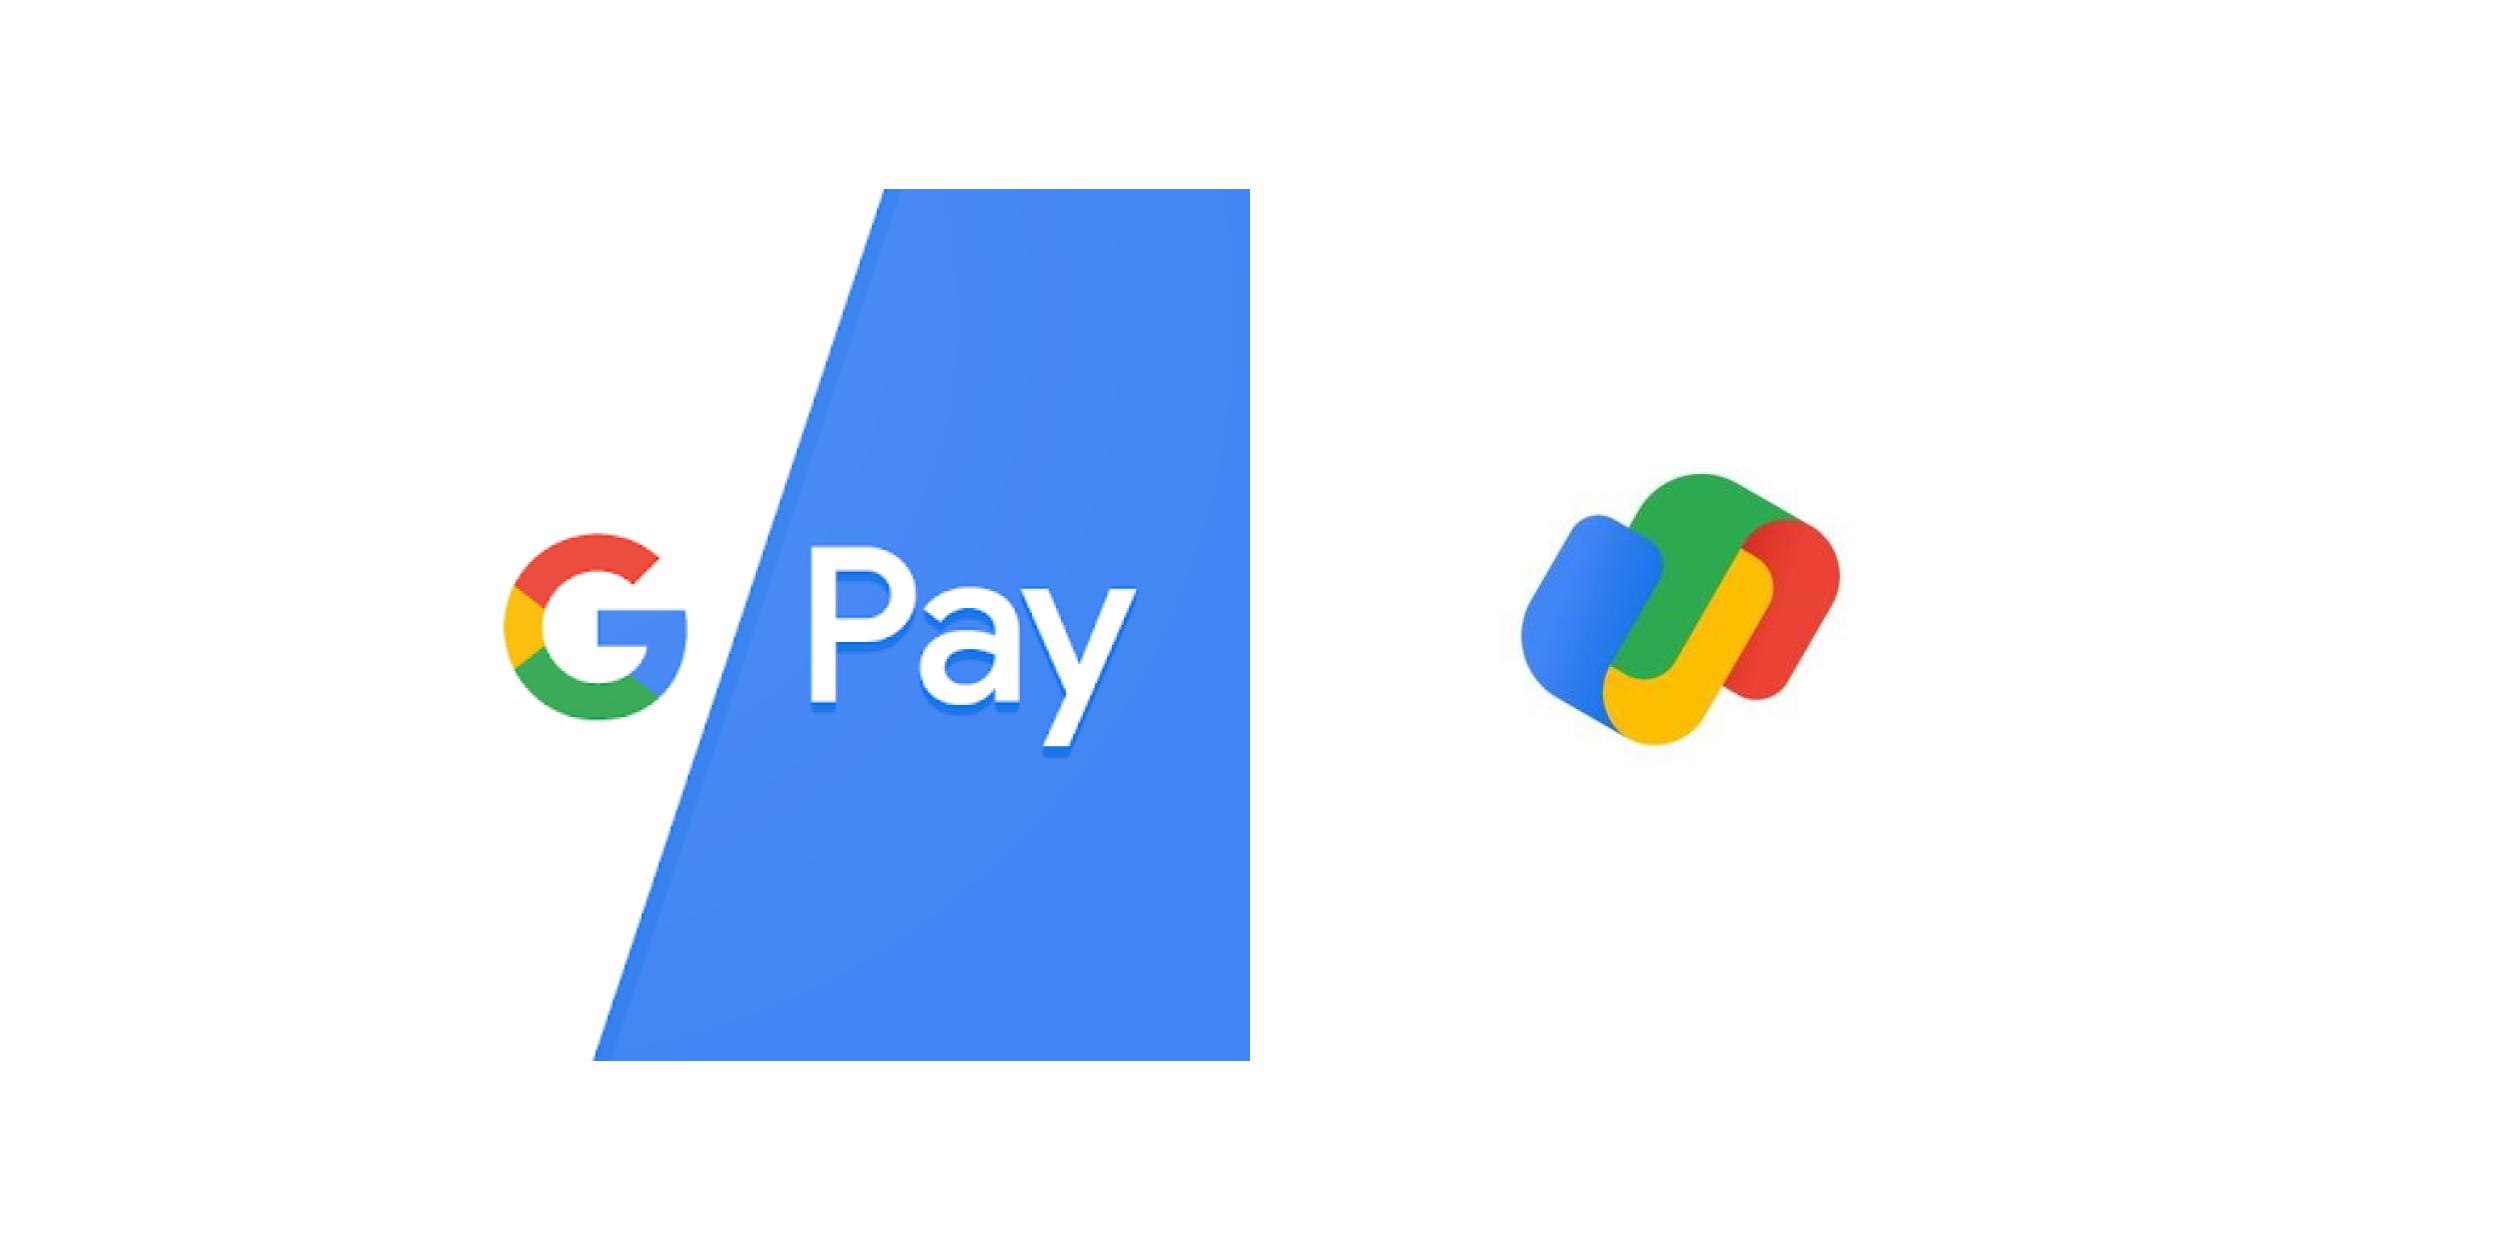 Google Pay (Tez) gets new multi-colored logo in India - 9to5Google